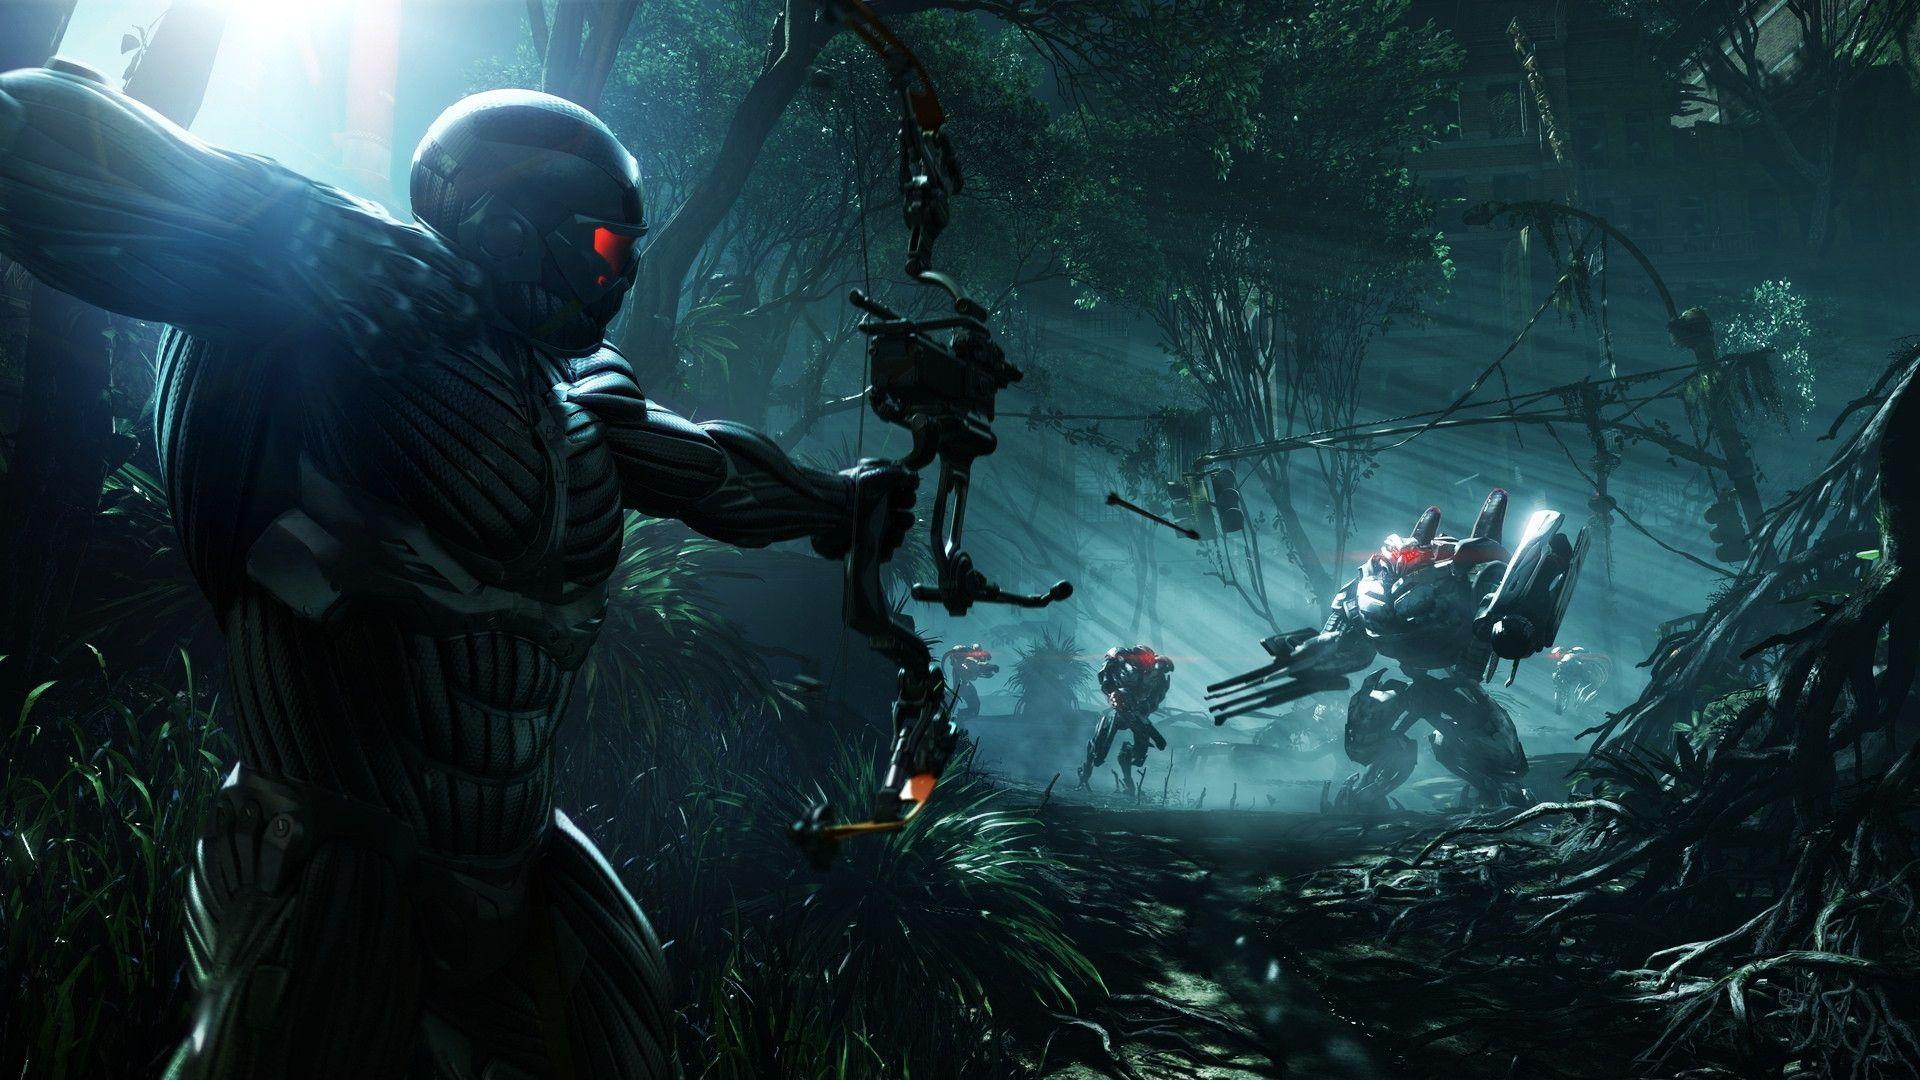 crysis 3 wallpapers - wallpaper cave